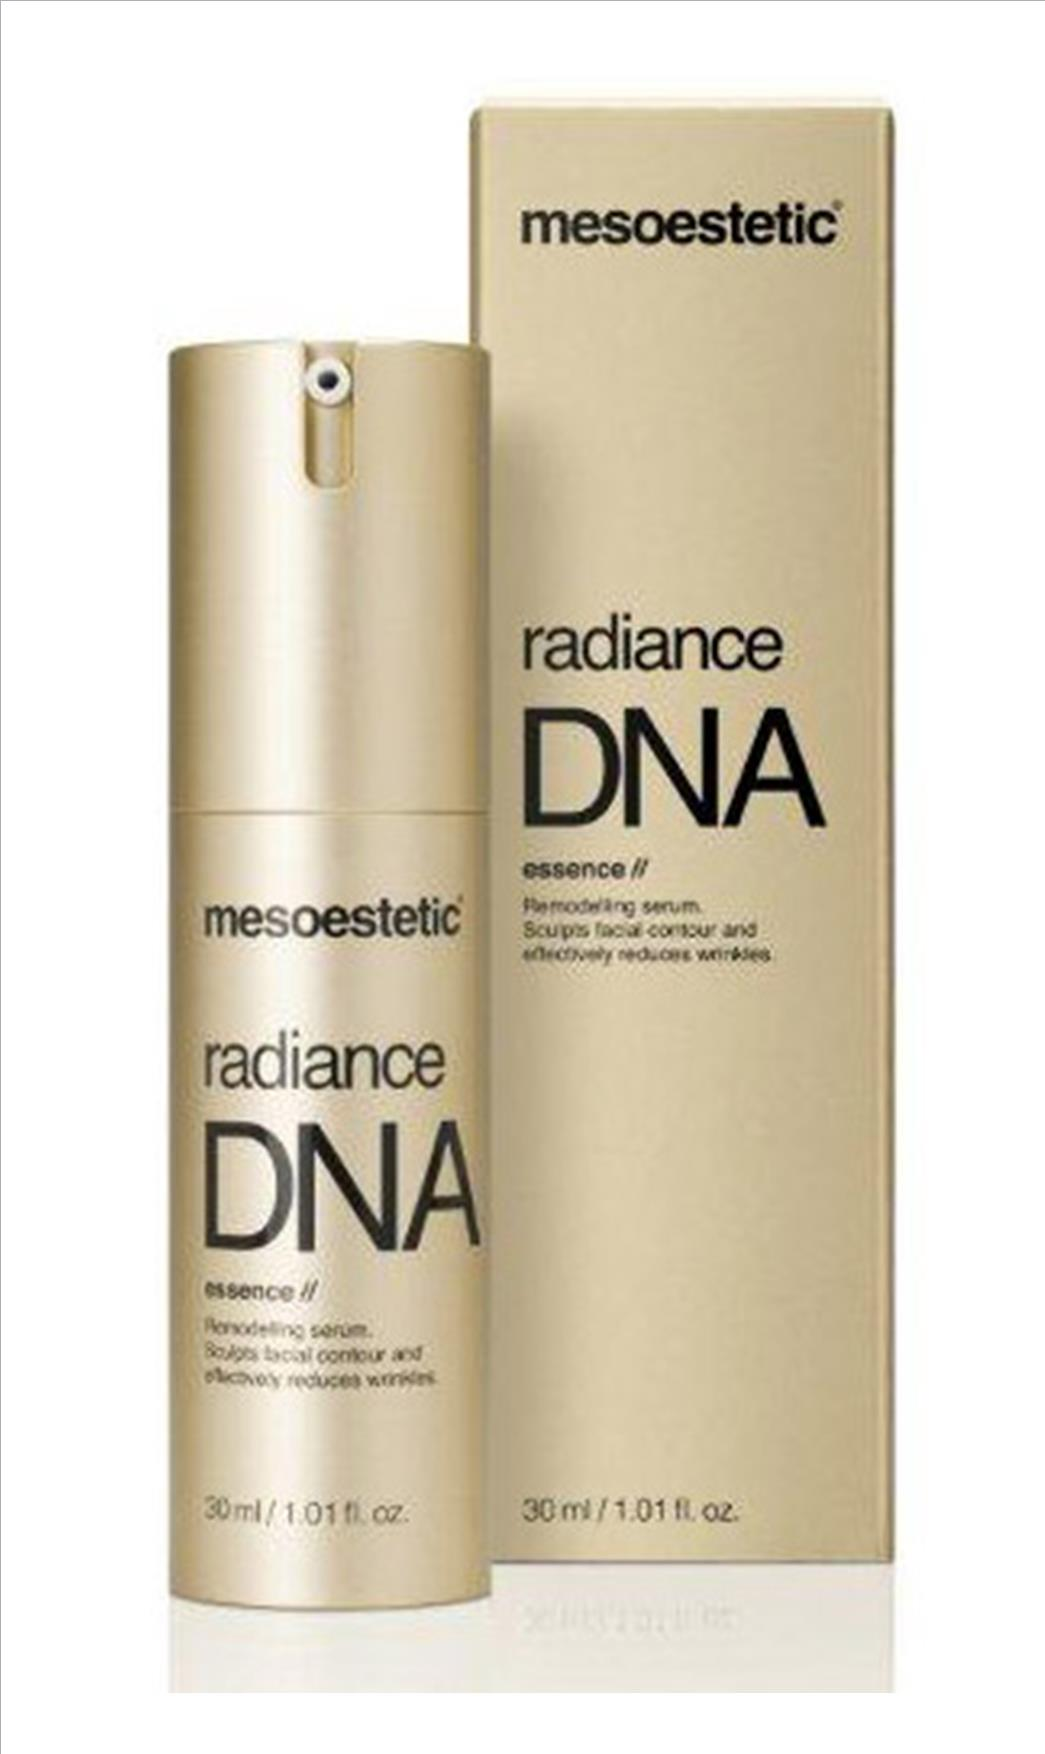 radiancedna-essence-g